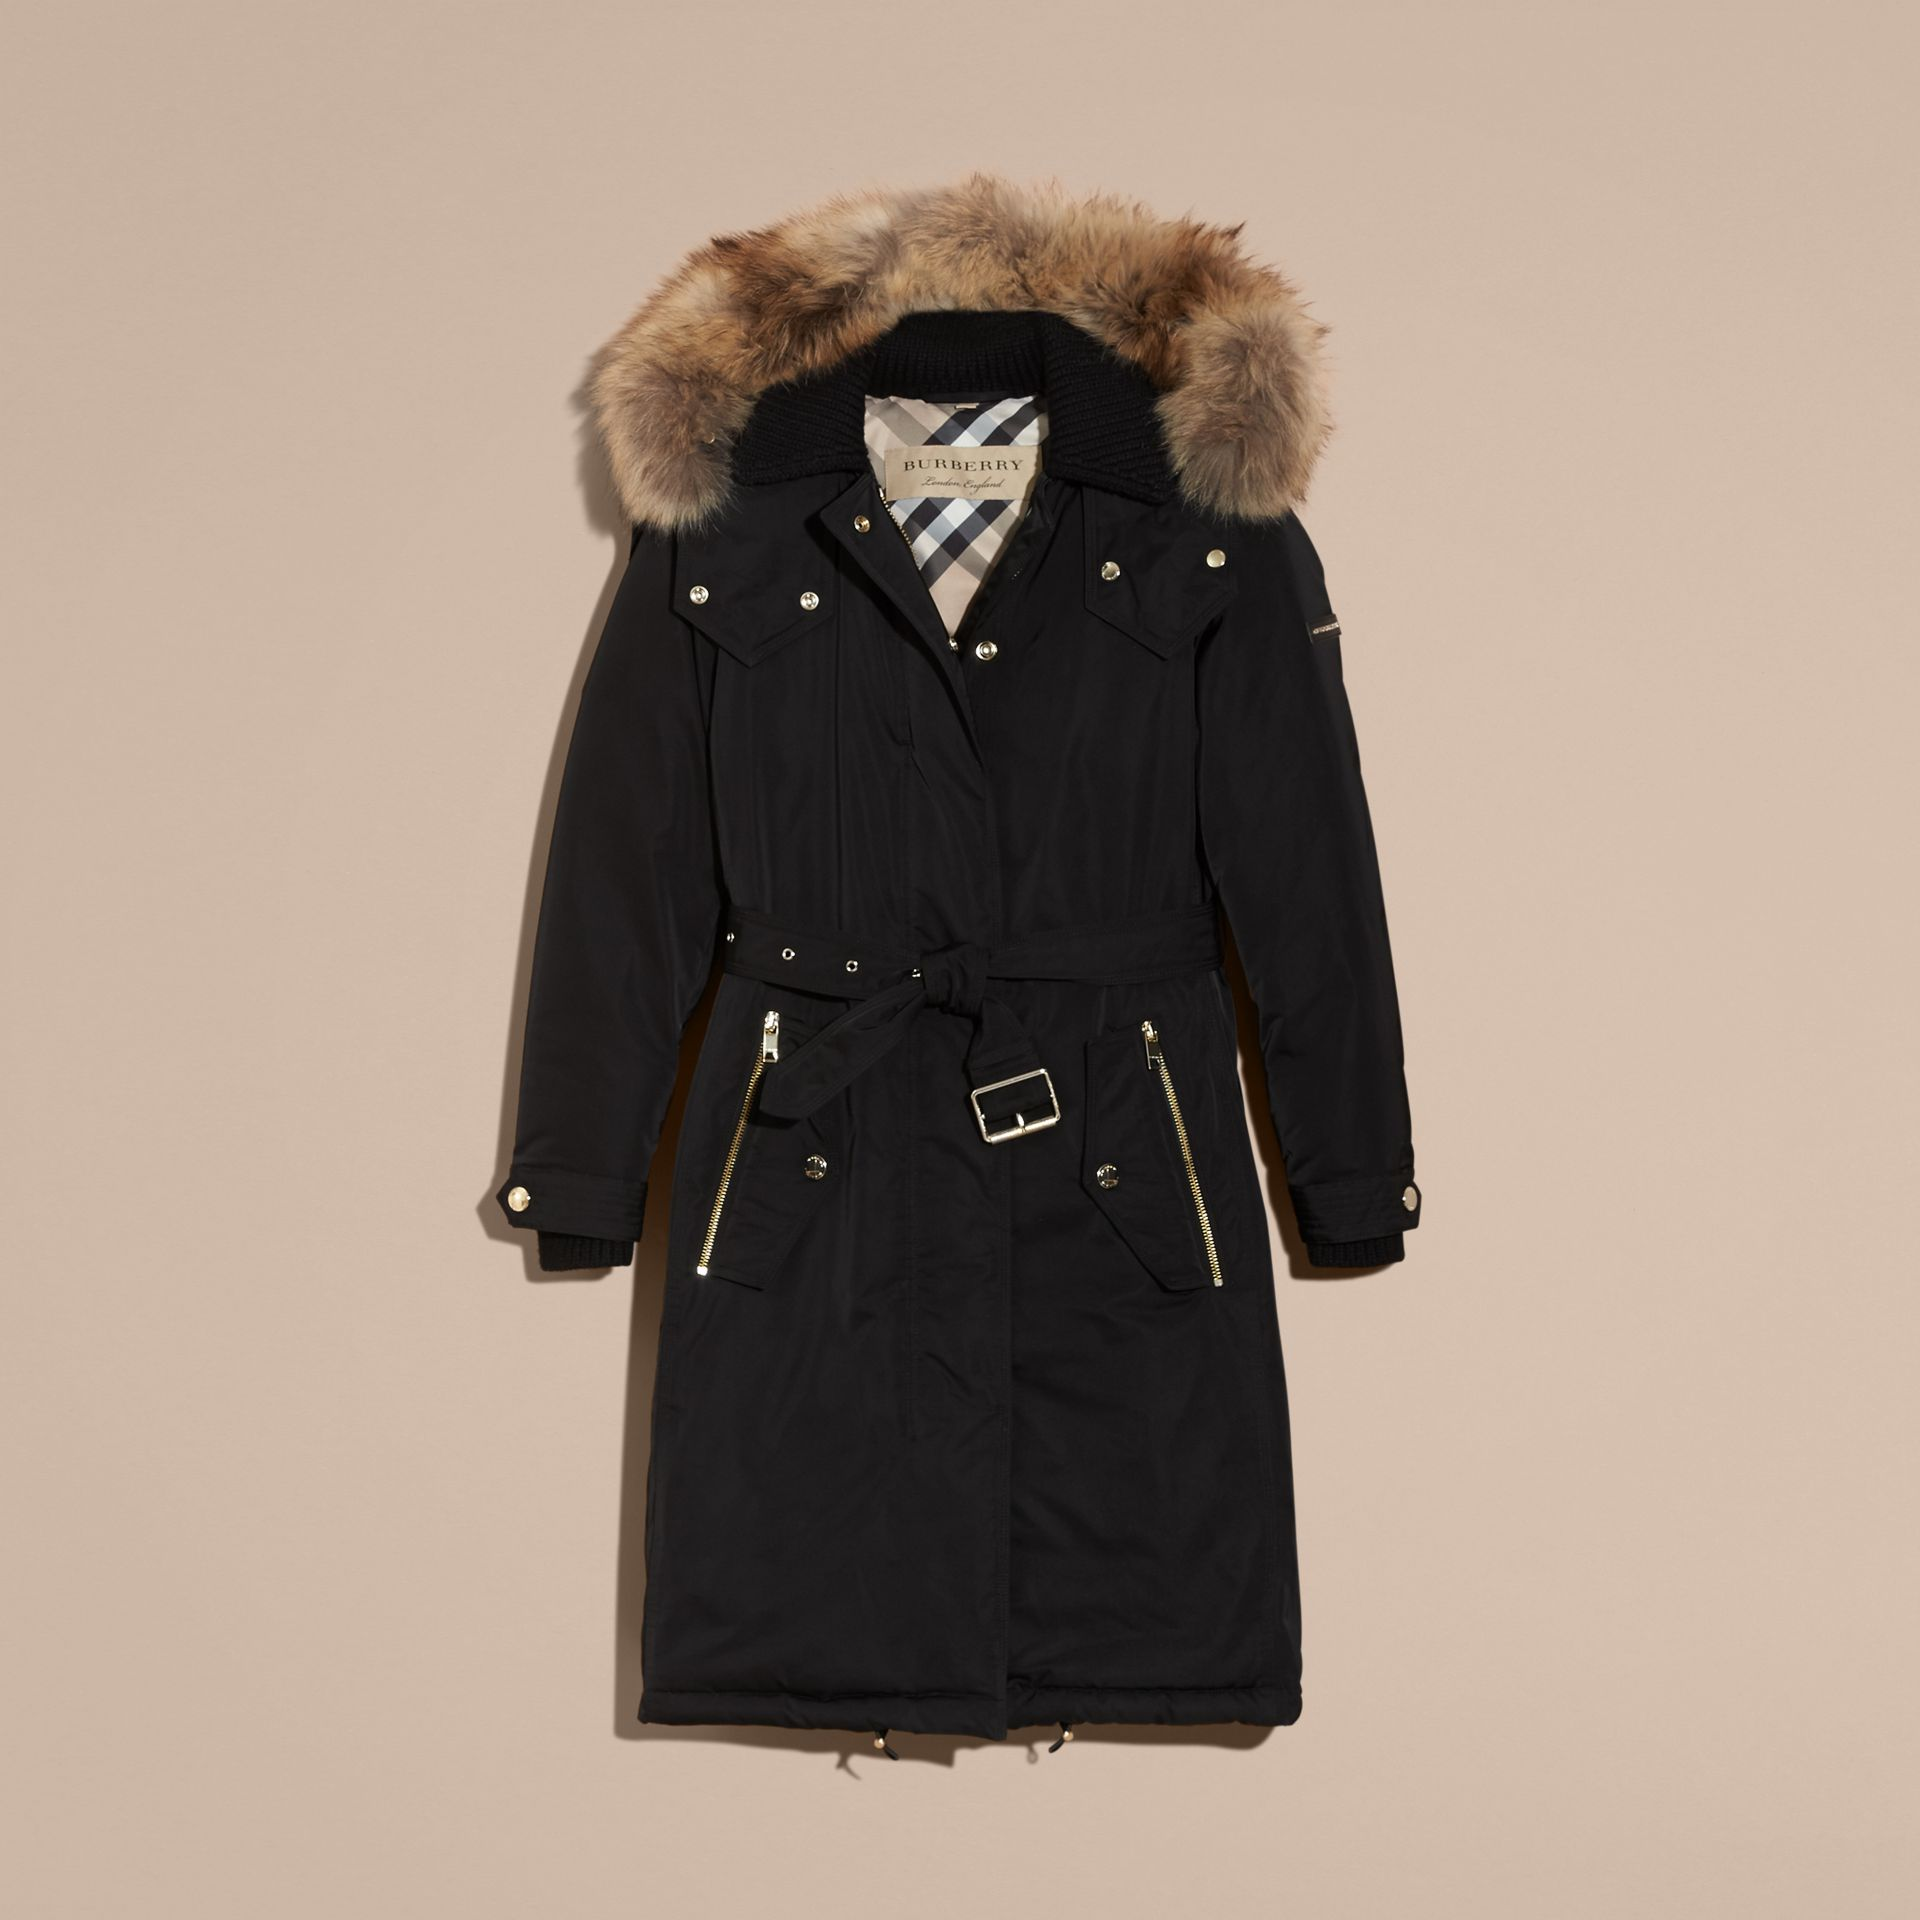 Down-filled Parka Coat with Detachable Fur Trim in Black - Women | Burberry - gallery image 4